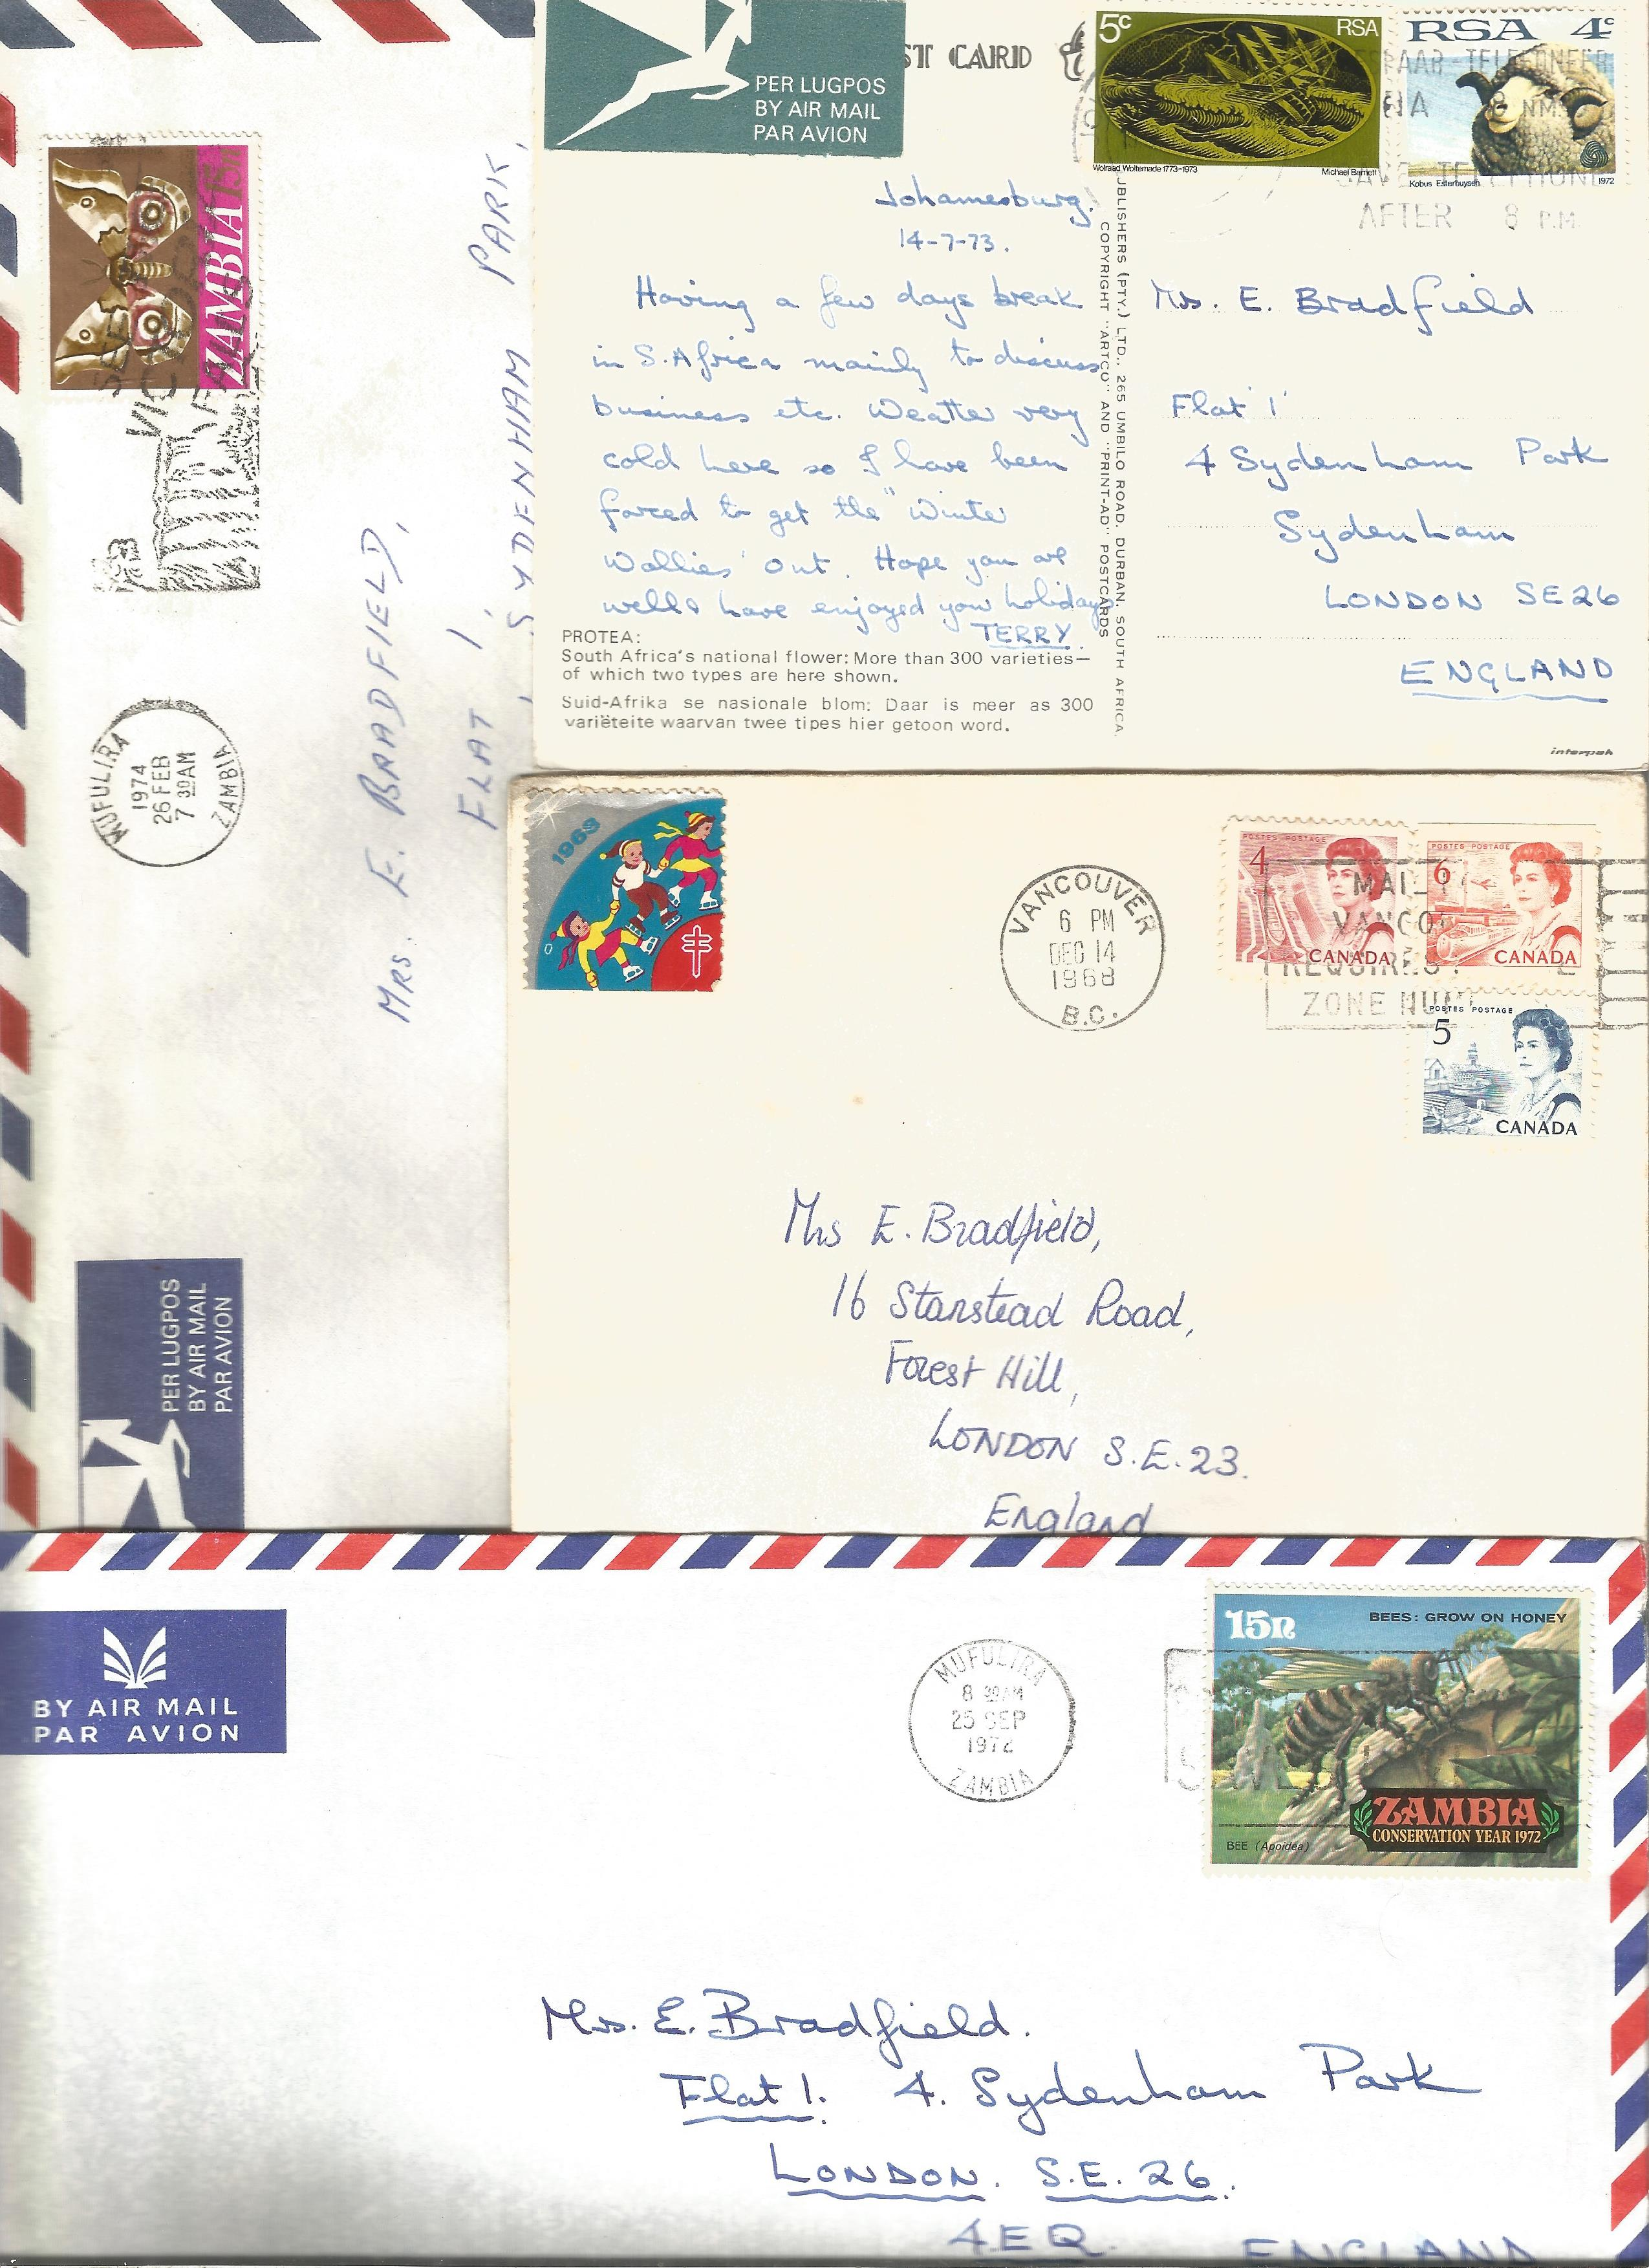 Overseas cover collection. 23 included. Australia, RSA, Canada and Zambia. Good condition. We